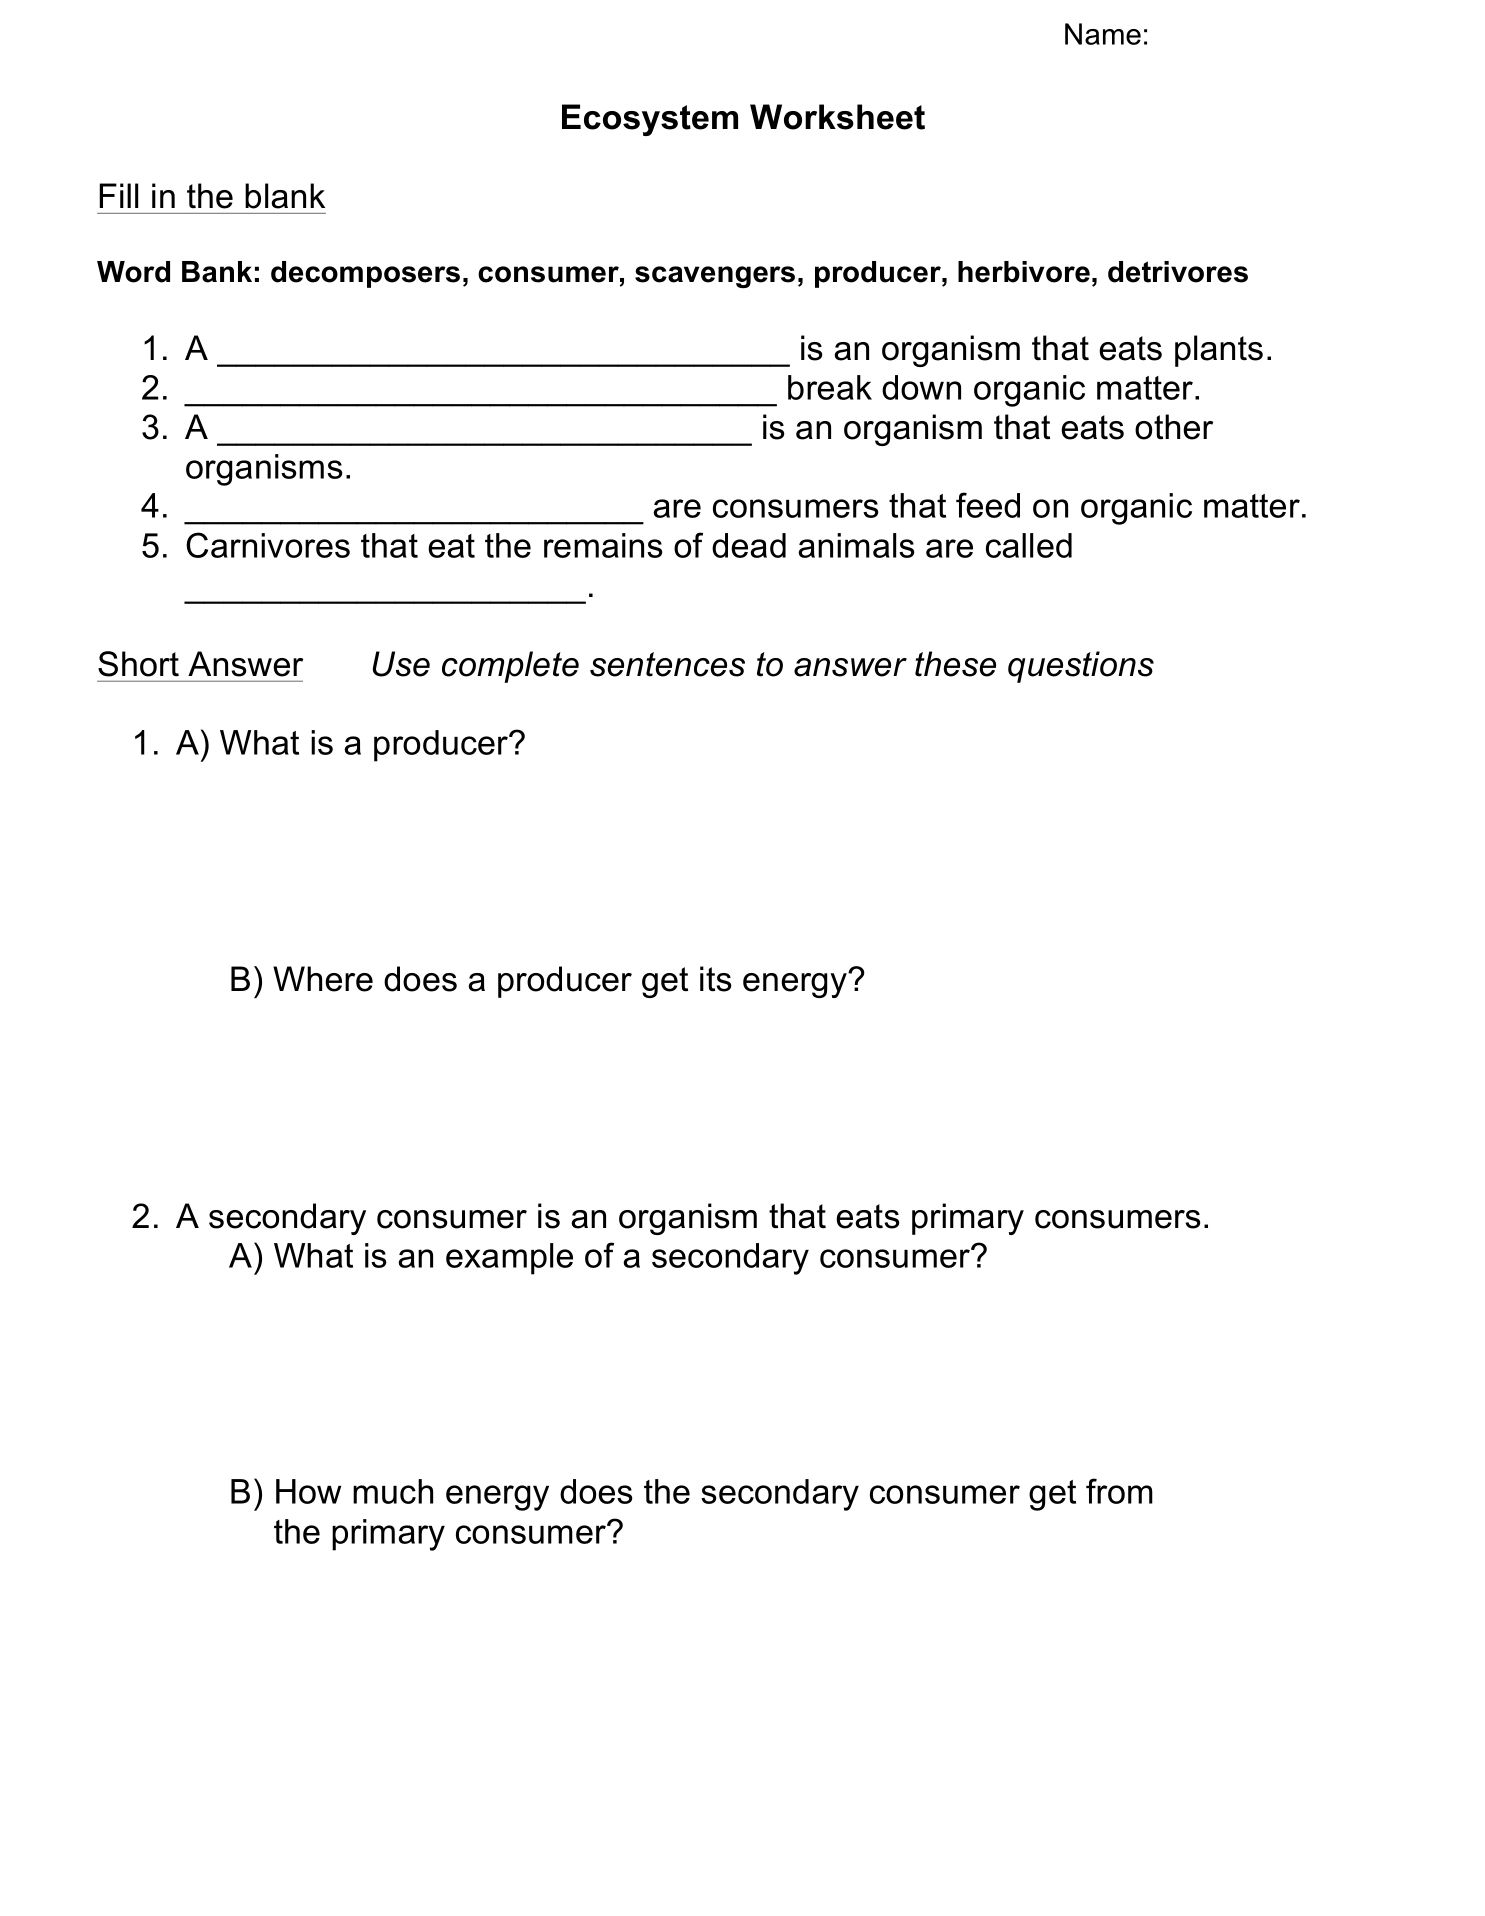 Ecosystems Worksheet Tuesday May 28 2019 Ecosystems Worksheets Worksheet Template